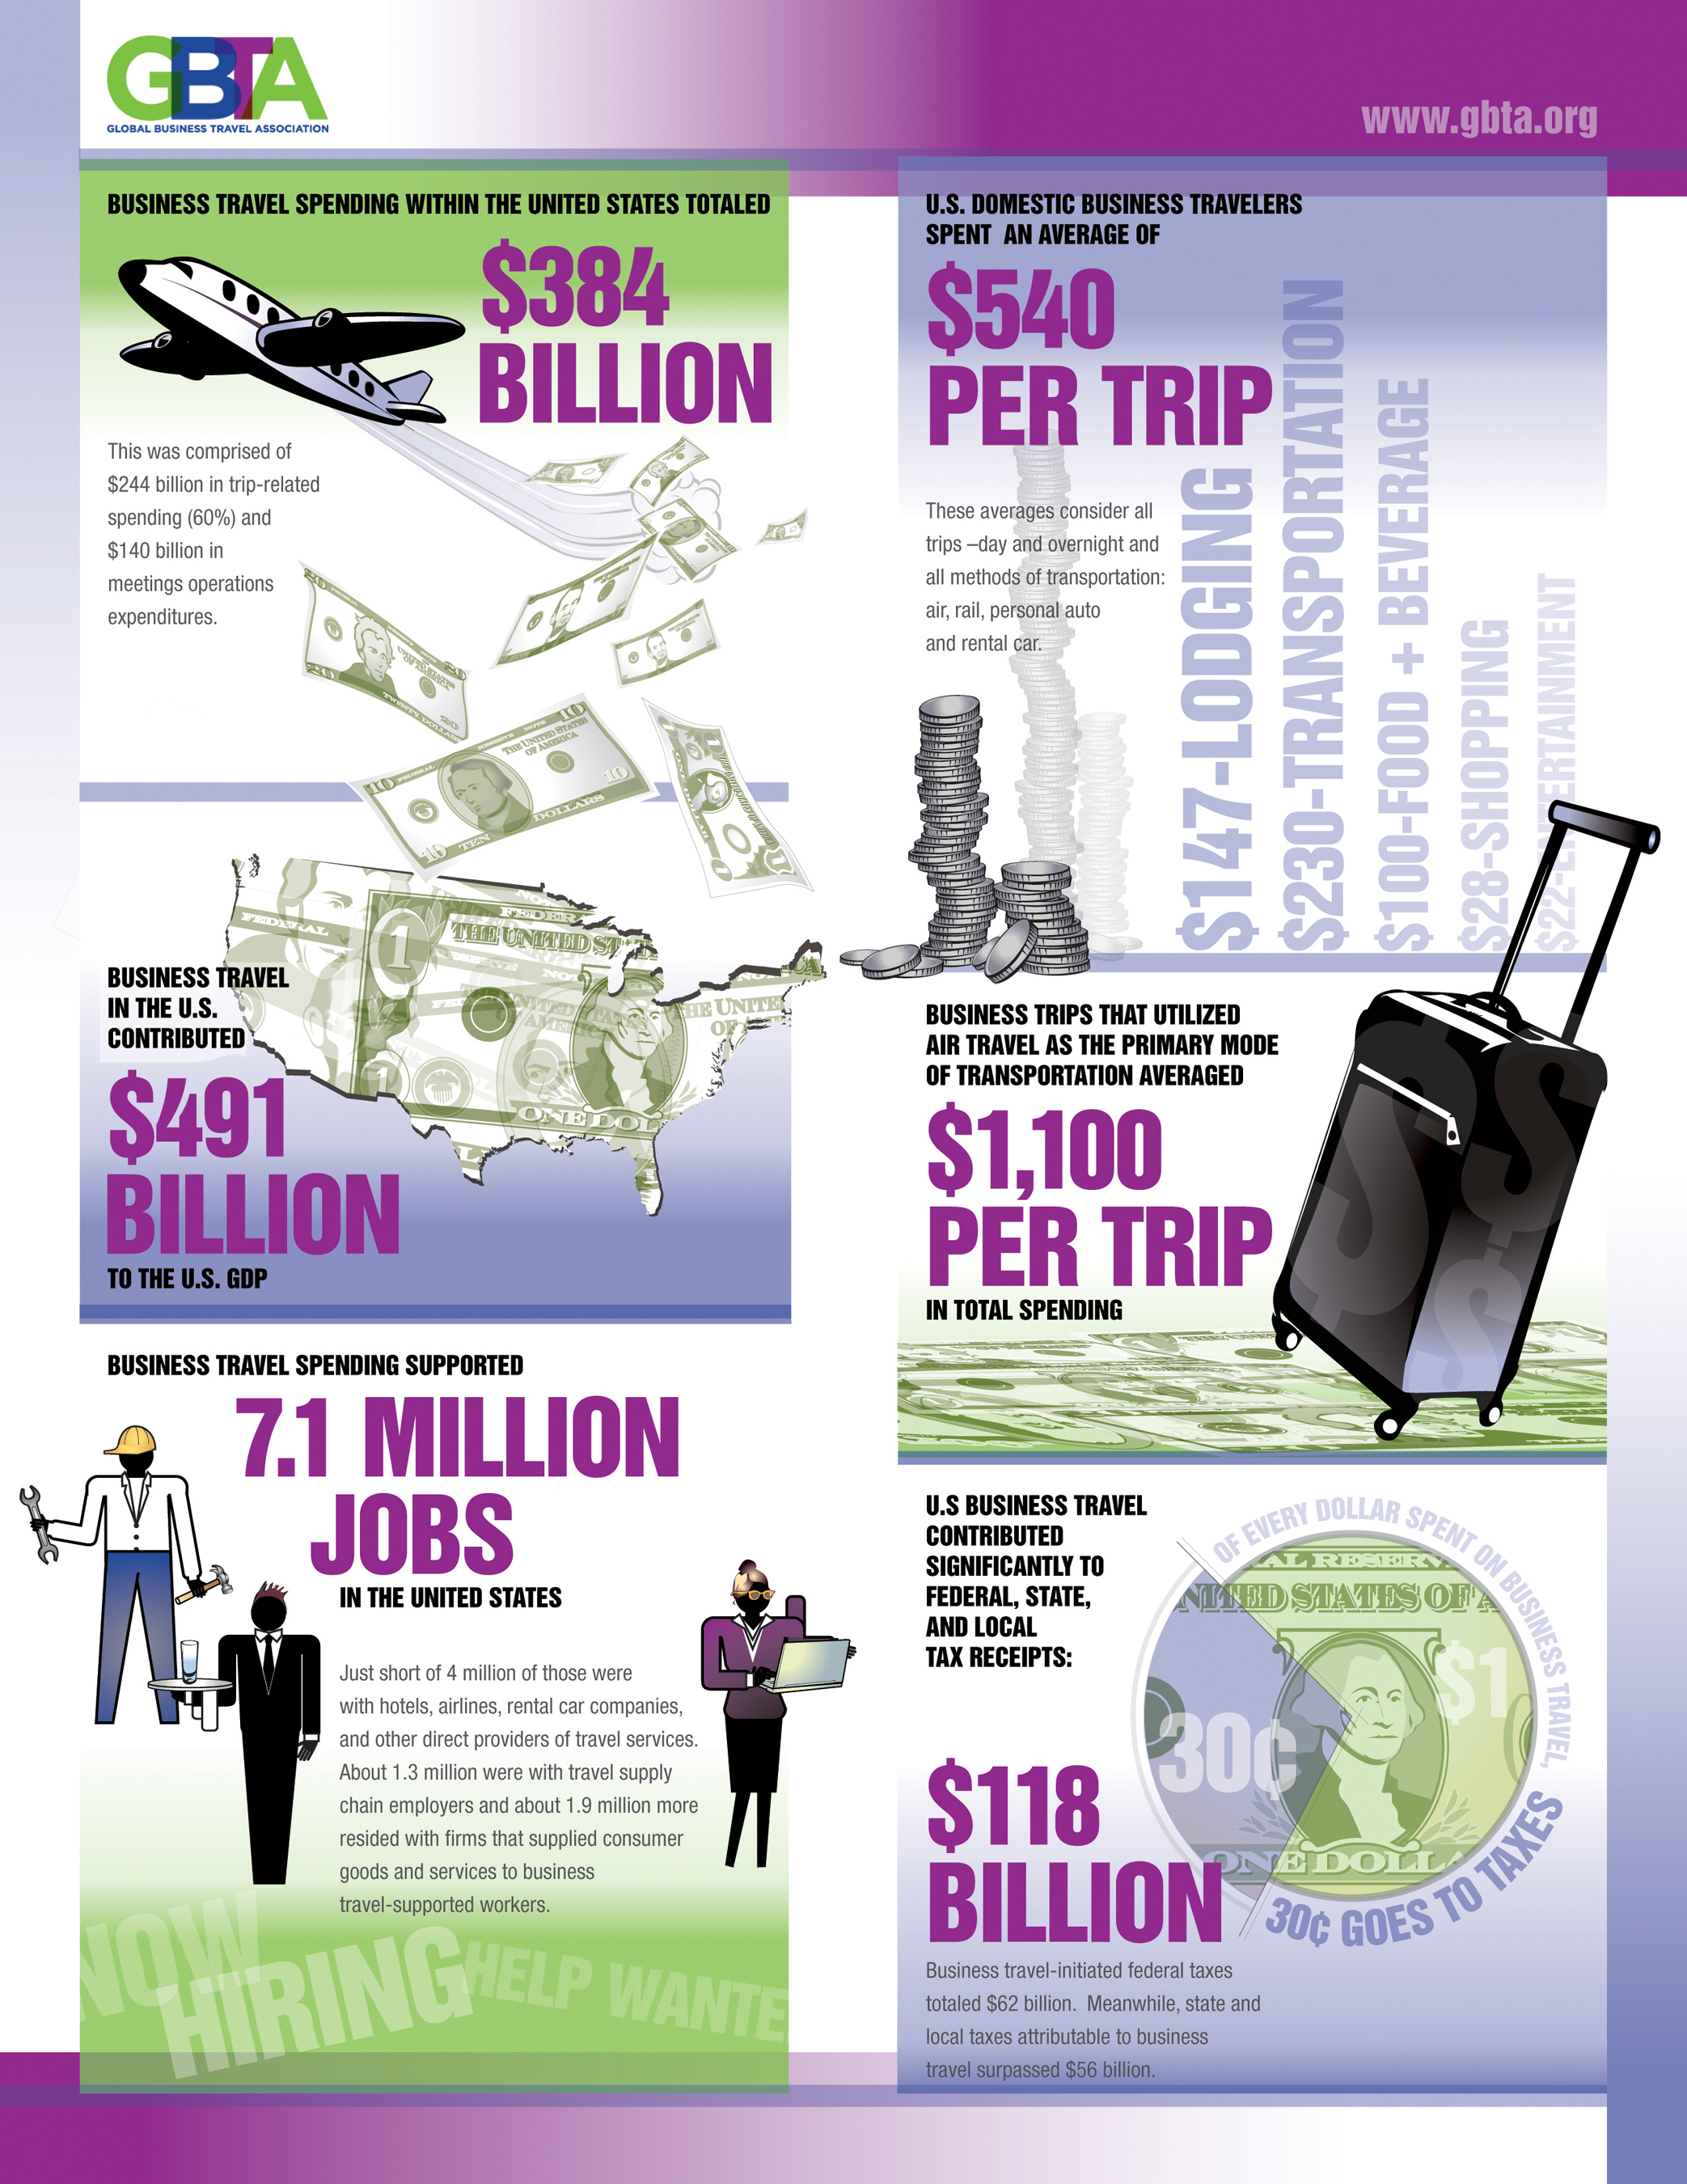 GBTA reveals the positive impact the business travel industry has on the U.S. economy. (PRNewsFoto/Global Business Travel Association) (PRNewsFoto/GLOBAL BUSINESS TRAVEL ASSOC.)